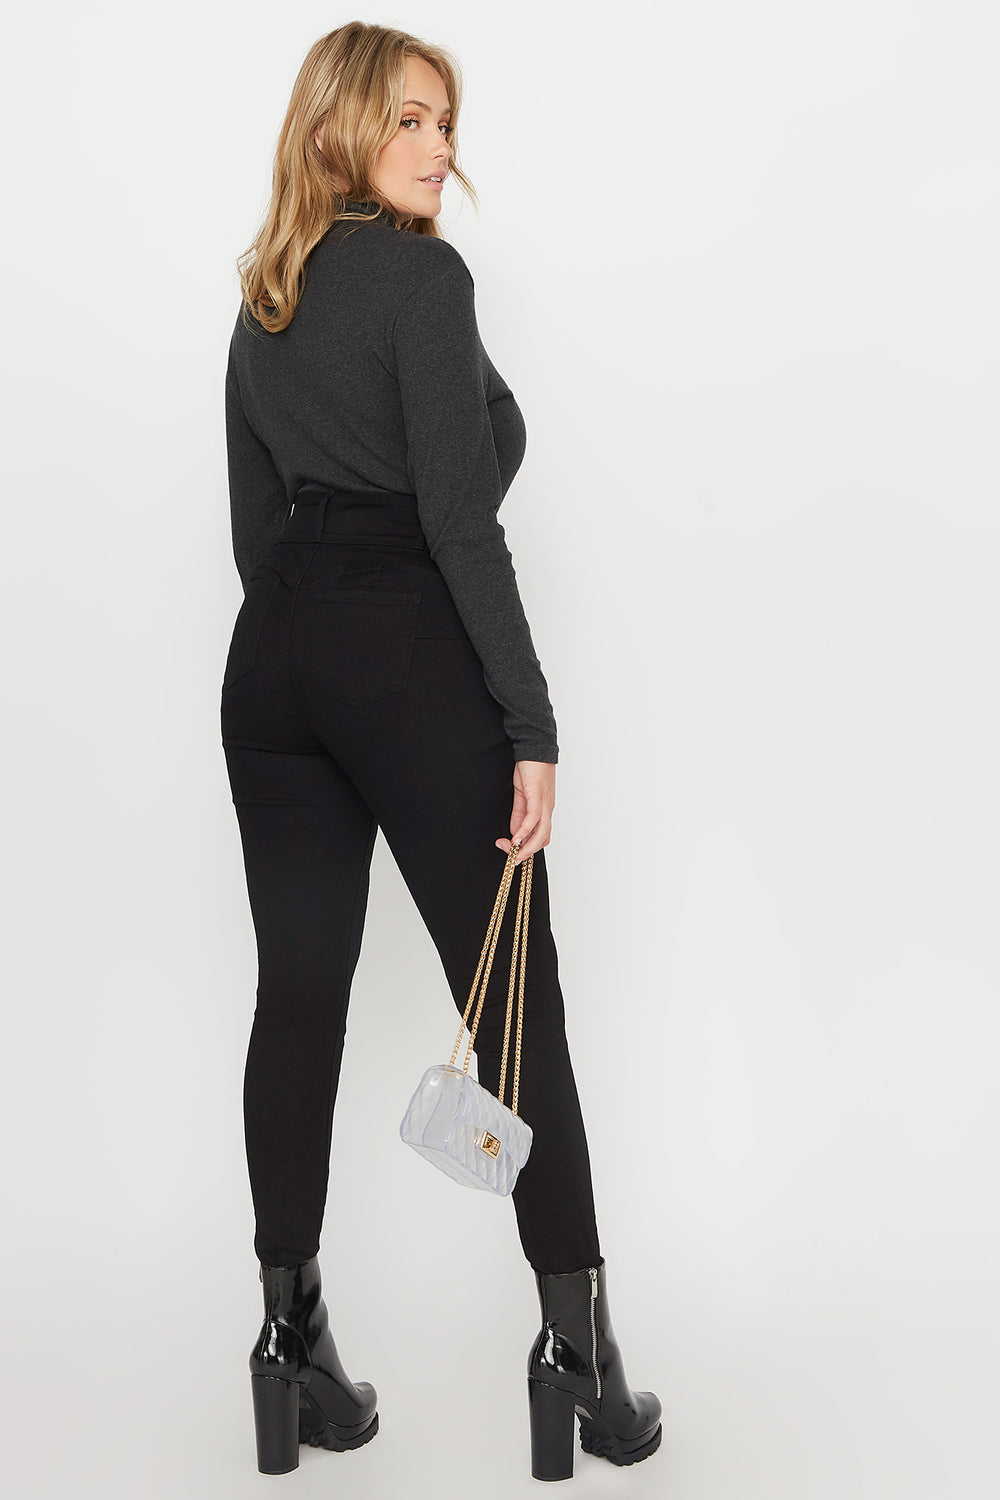 Plus Size Butt, I Love You High-Rise Push-Up Skinny Jean Black